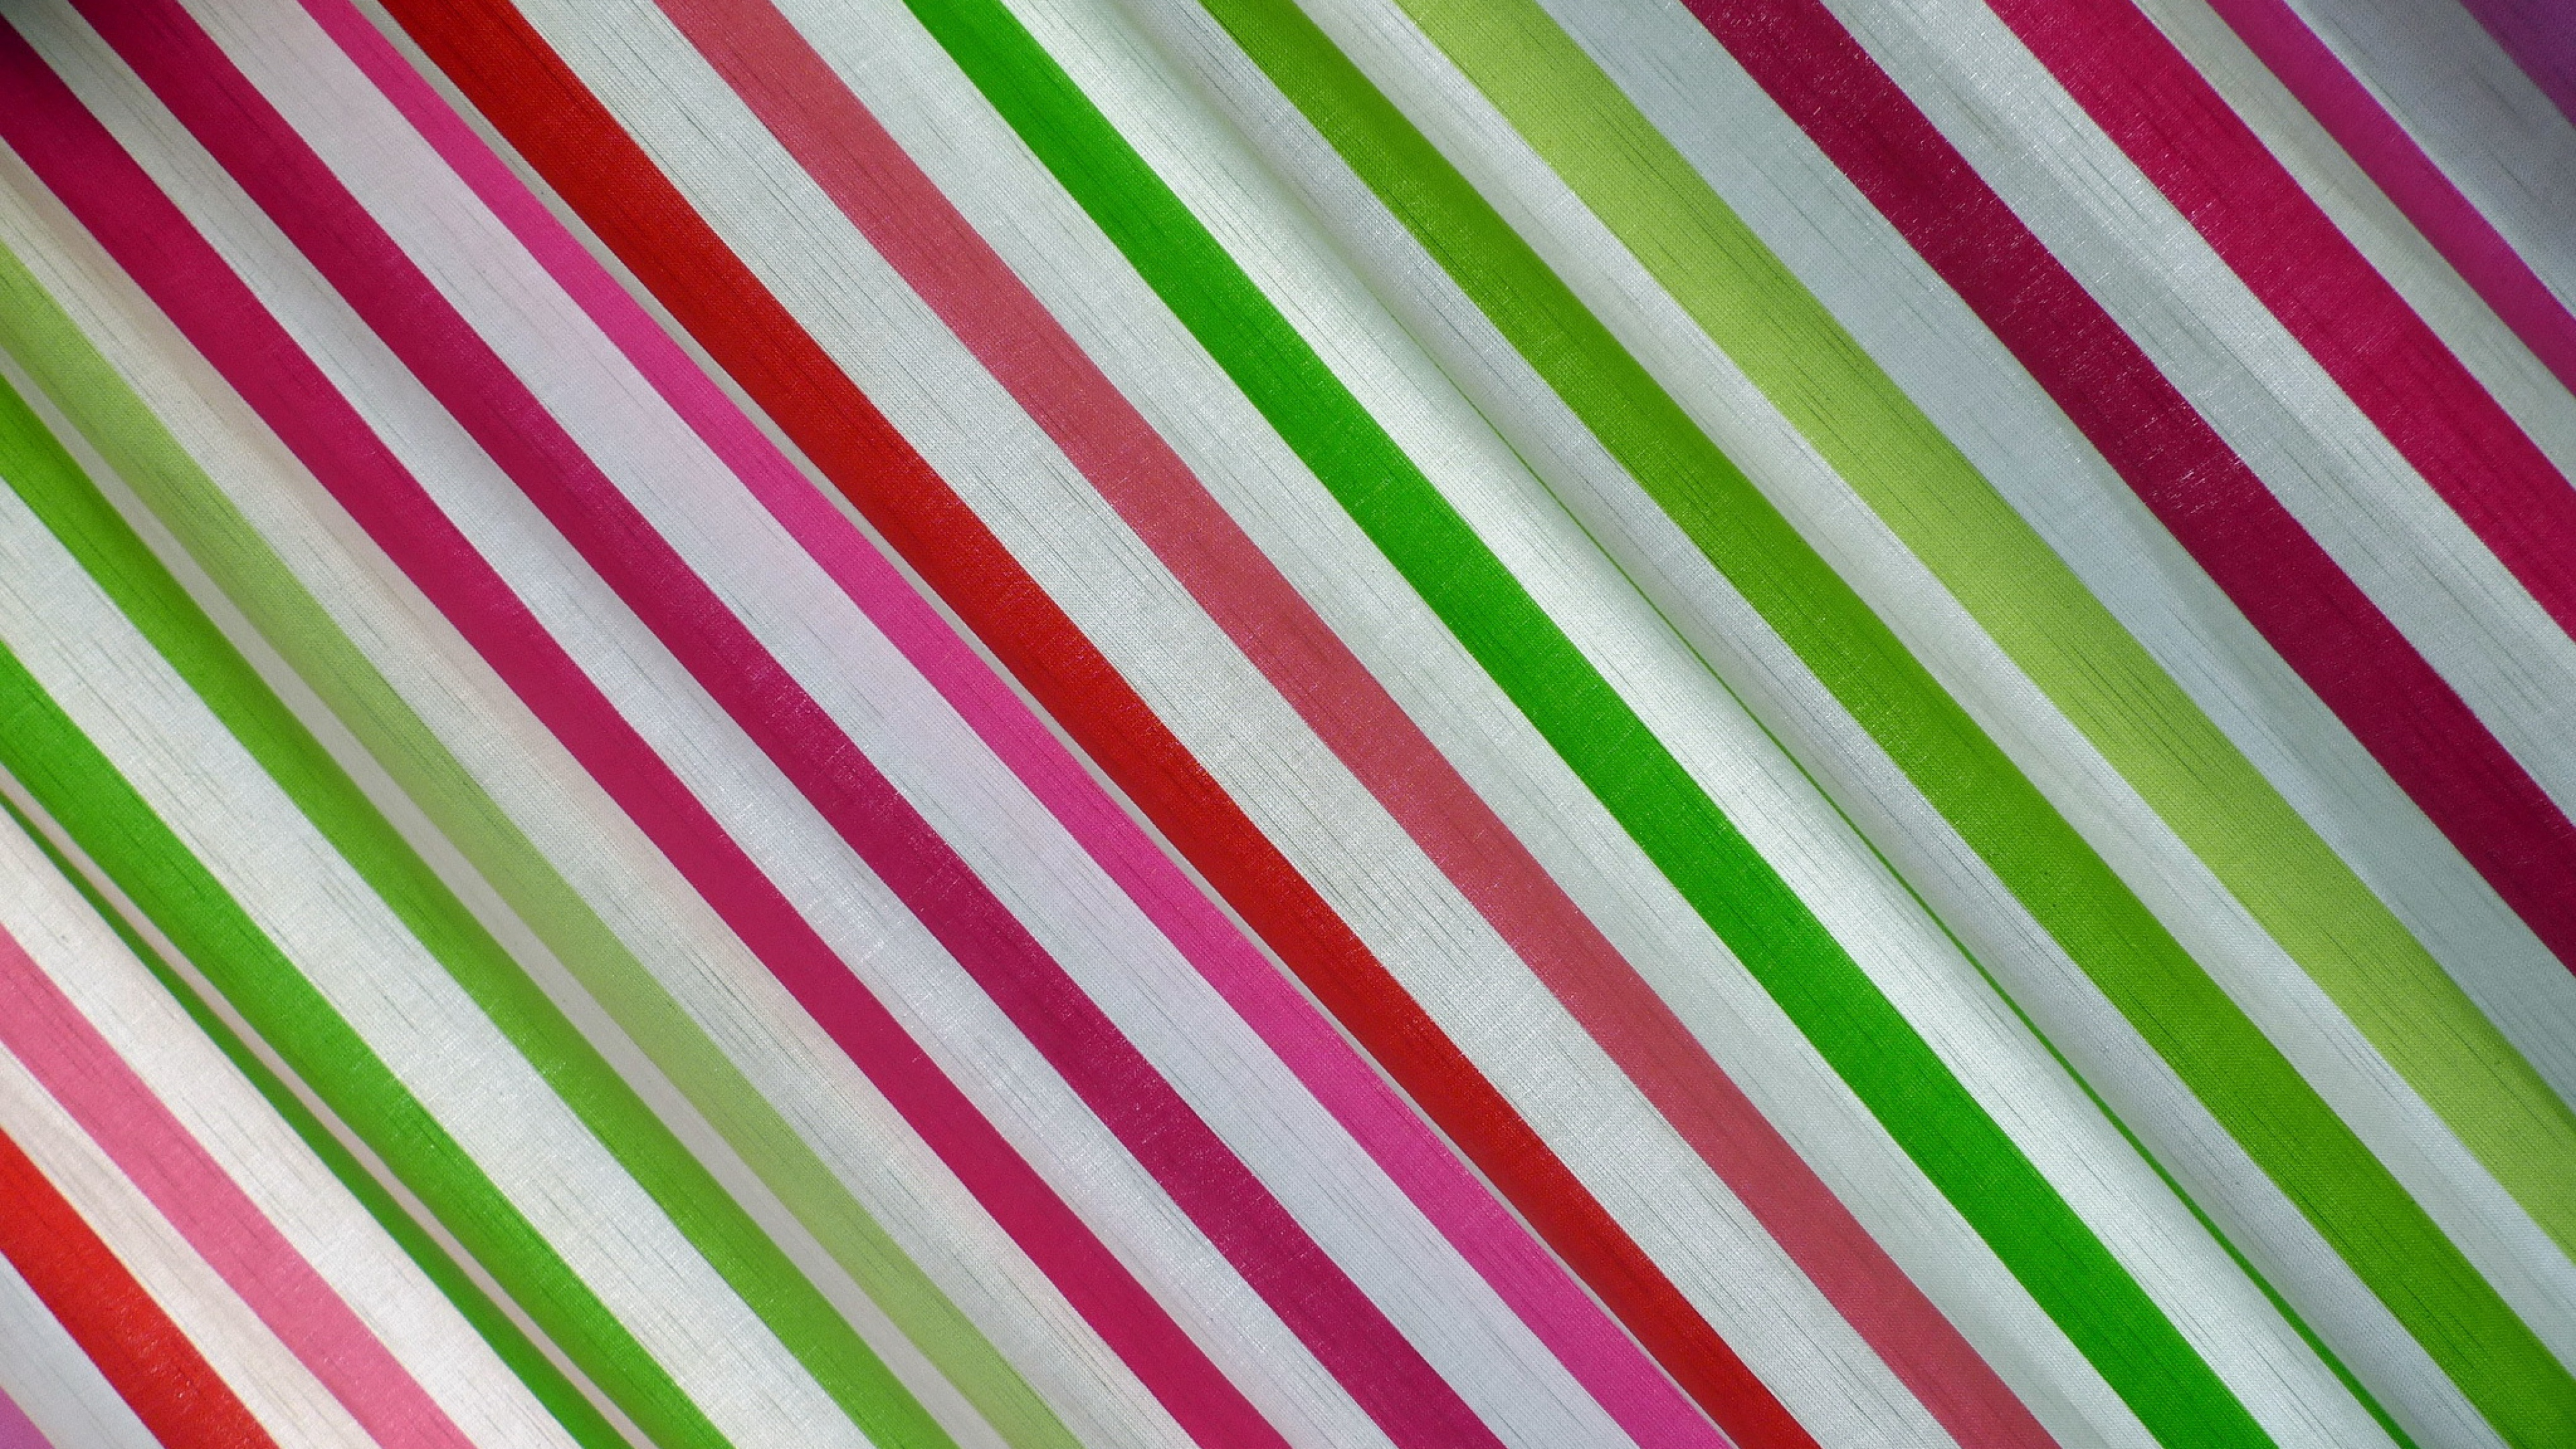 fabric strip texture 1539370640 - Fabric Strip Texture - texture wallpapers, strip wallpapers, fabric wallpapers, abstract wallpapers